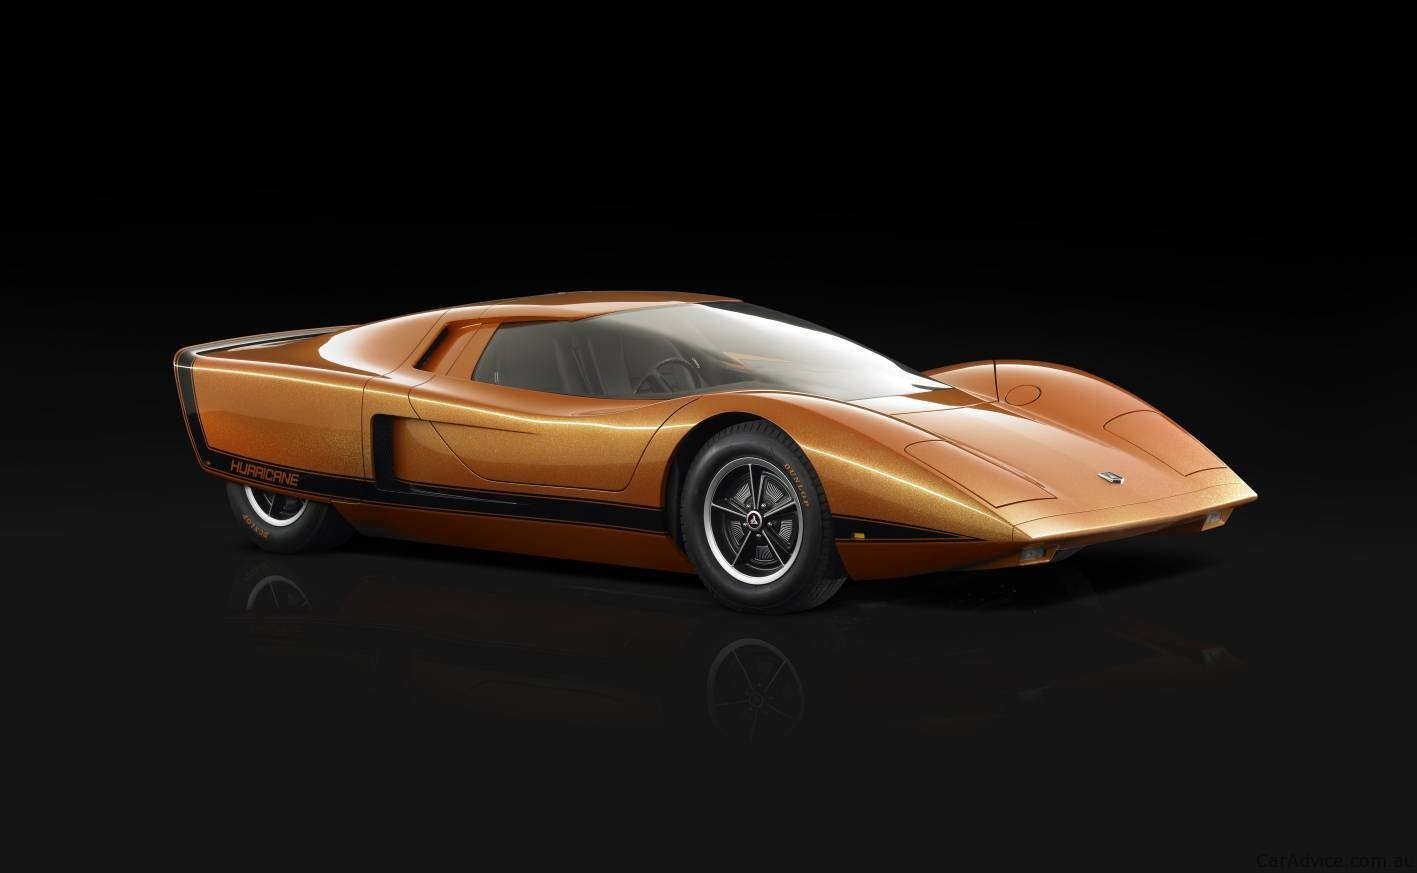 holden hurricane holden hurricane concept car 1969.